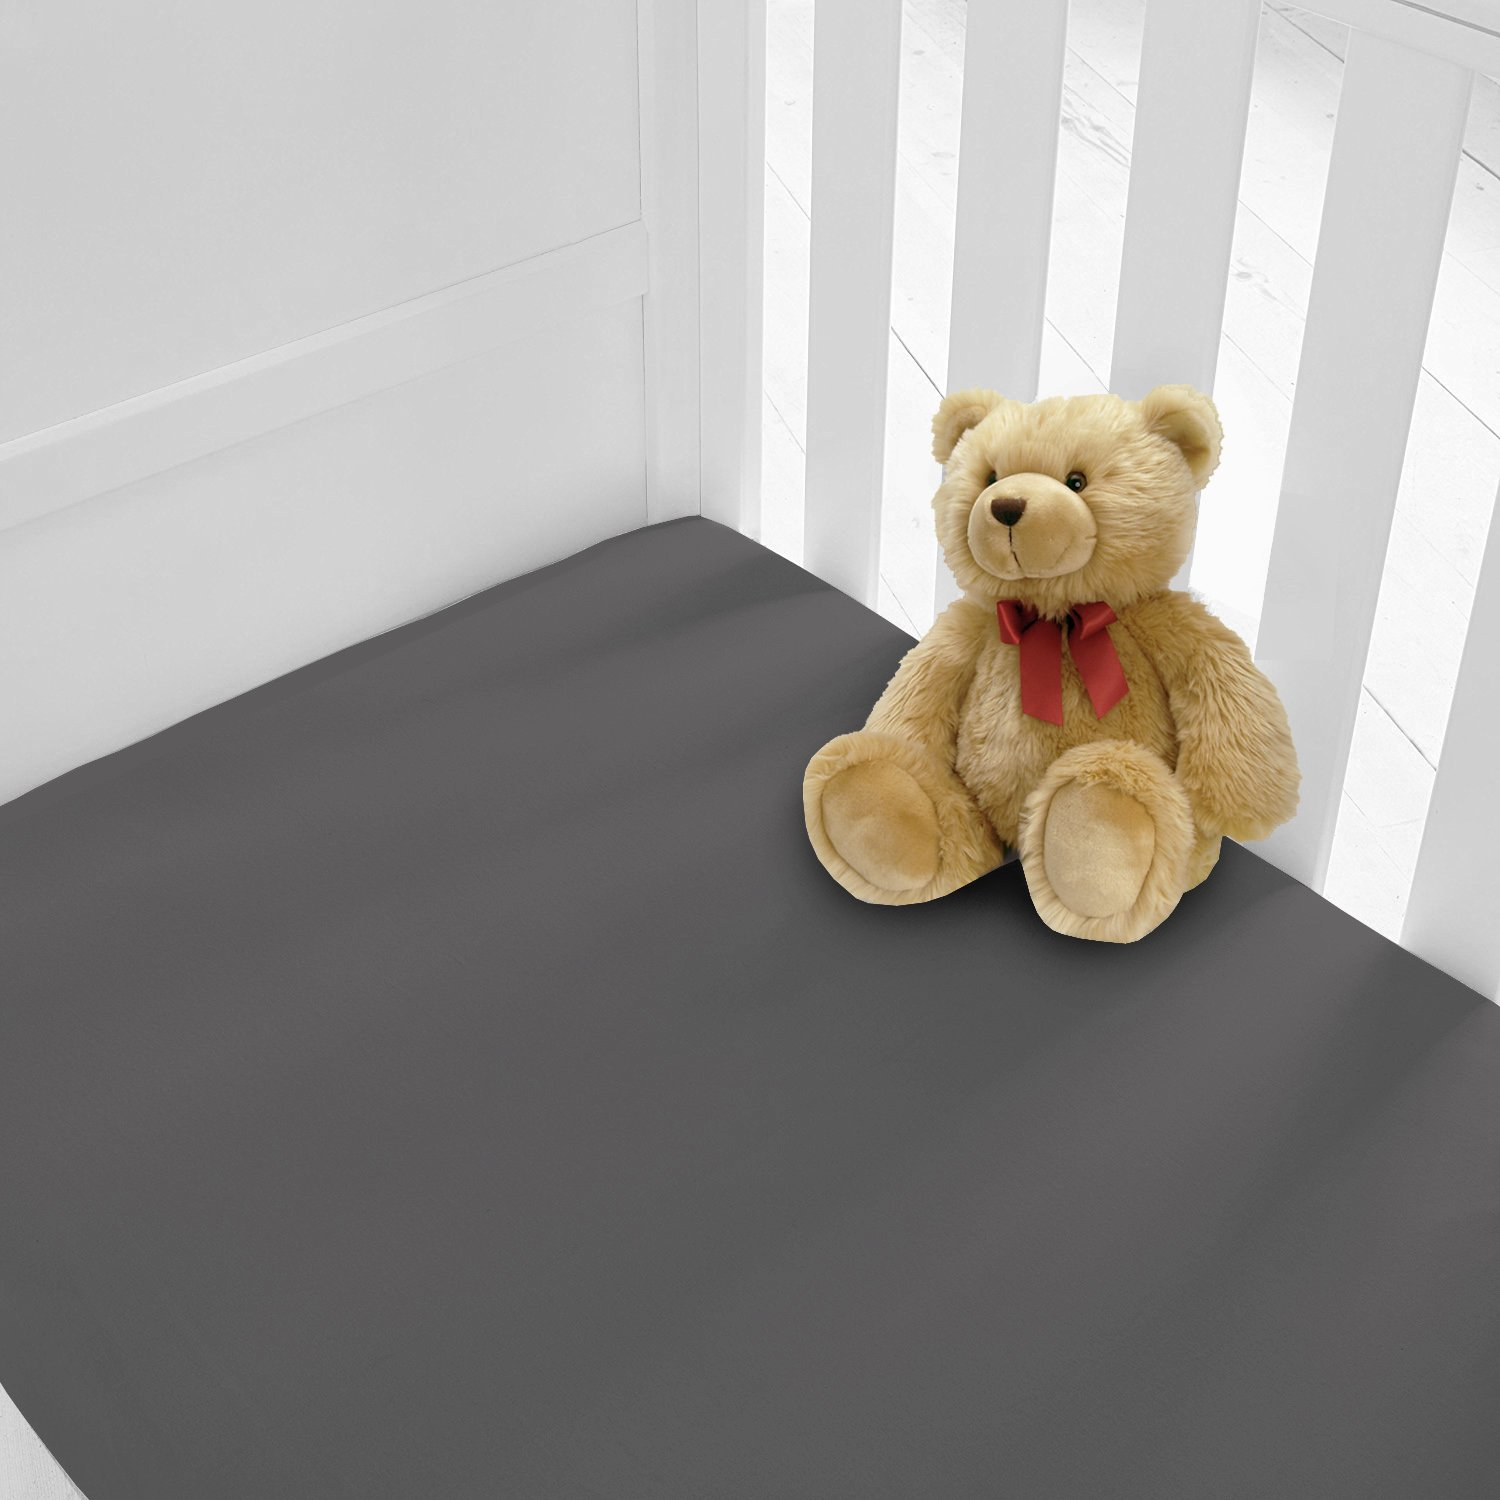 Luxury Percale Cot Bed Fitted Sheets Available in 12 Colours Cotbed, Charcoal Pack of 2 Two